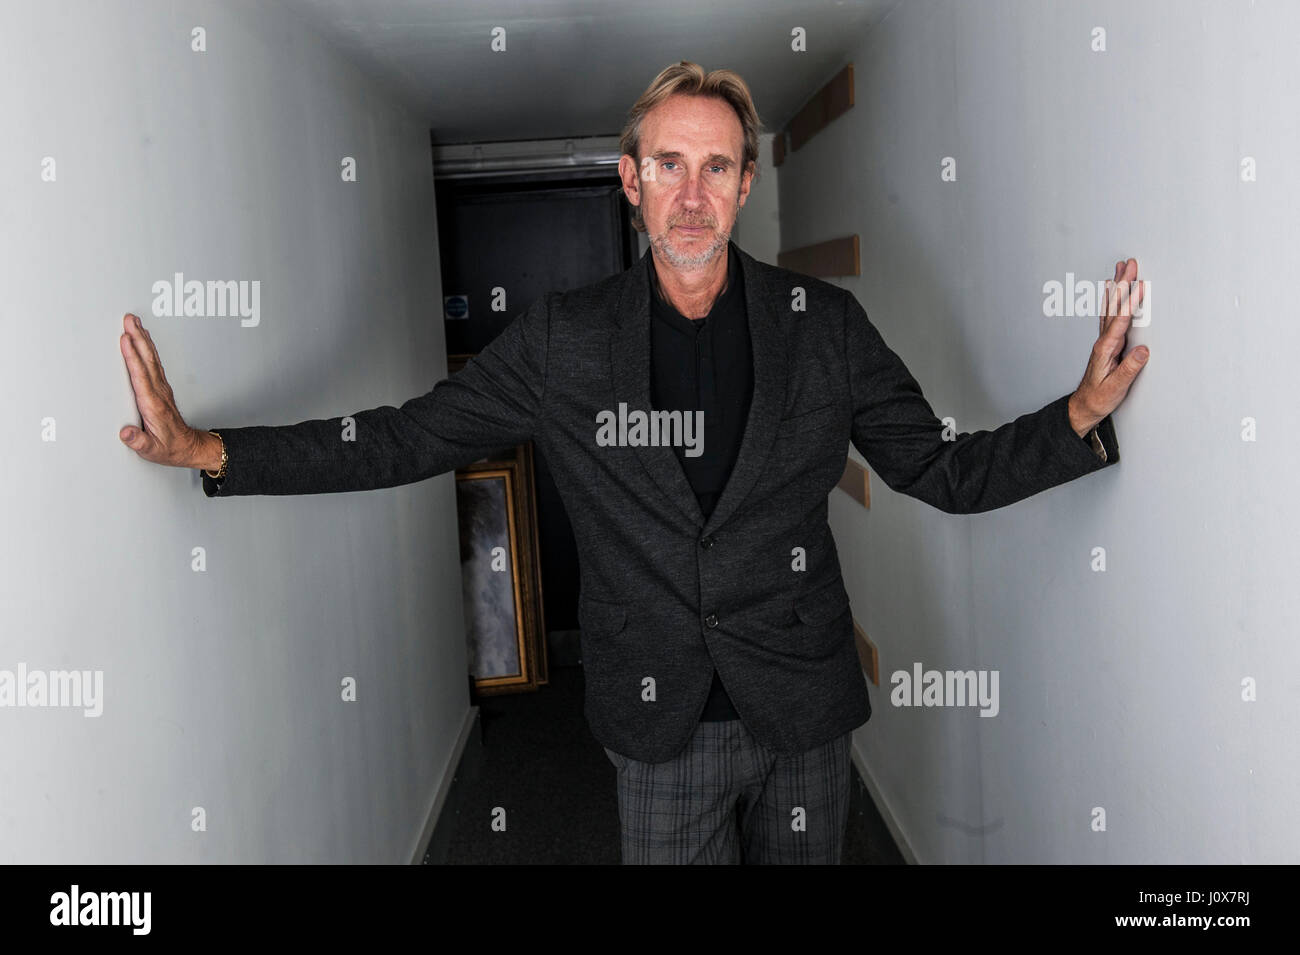 Mike rutherford stockfotos mike rutherford bilder alamy - Hackett london head office ...